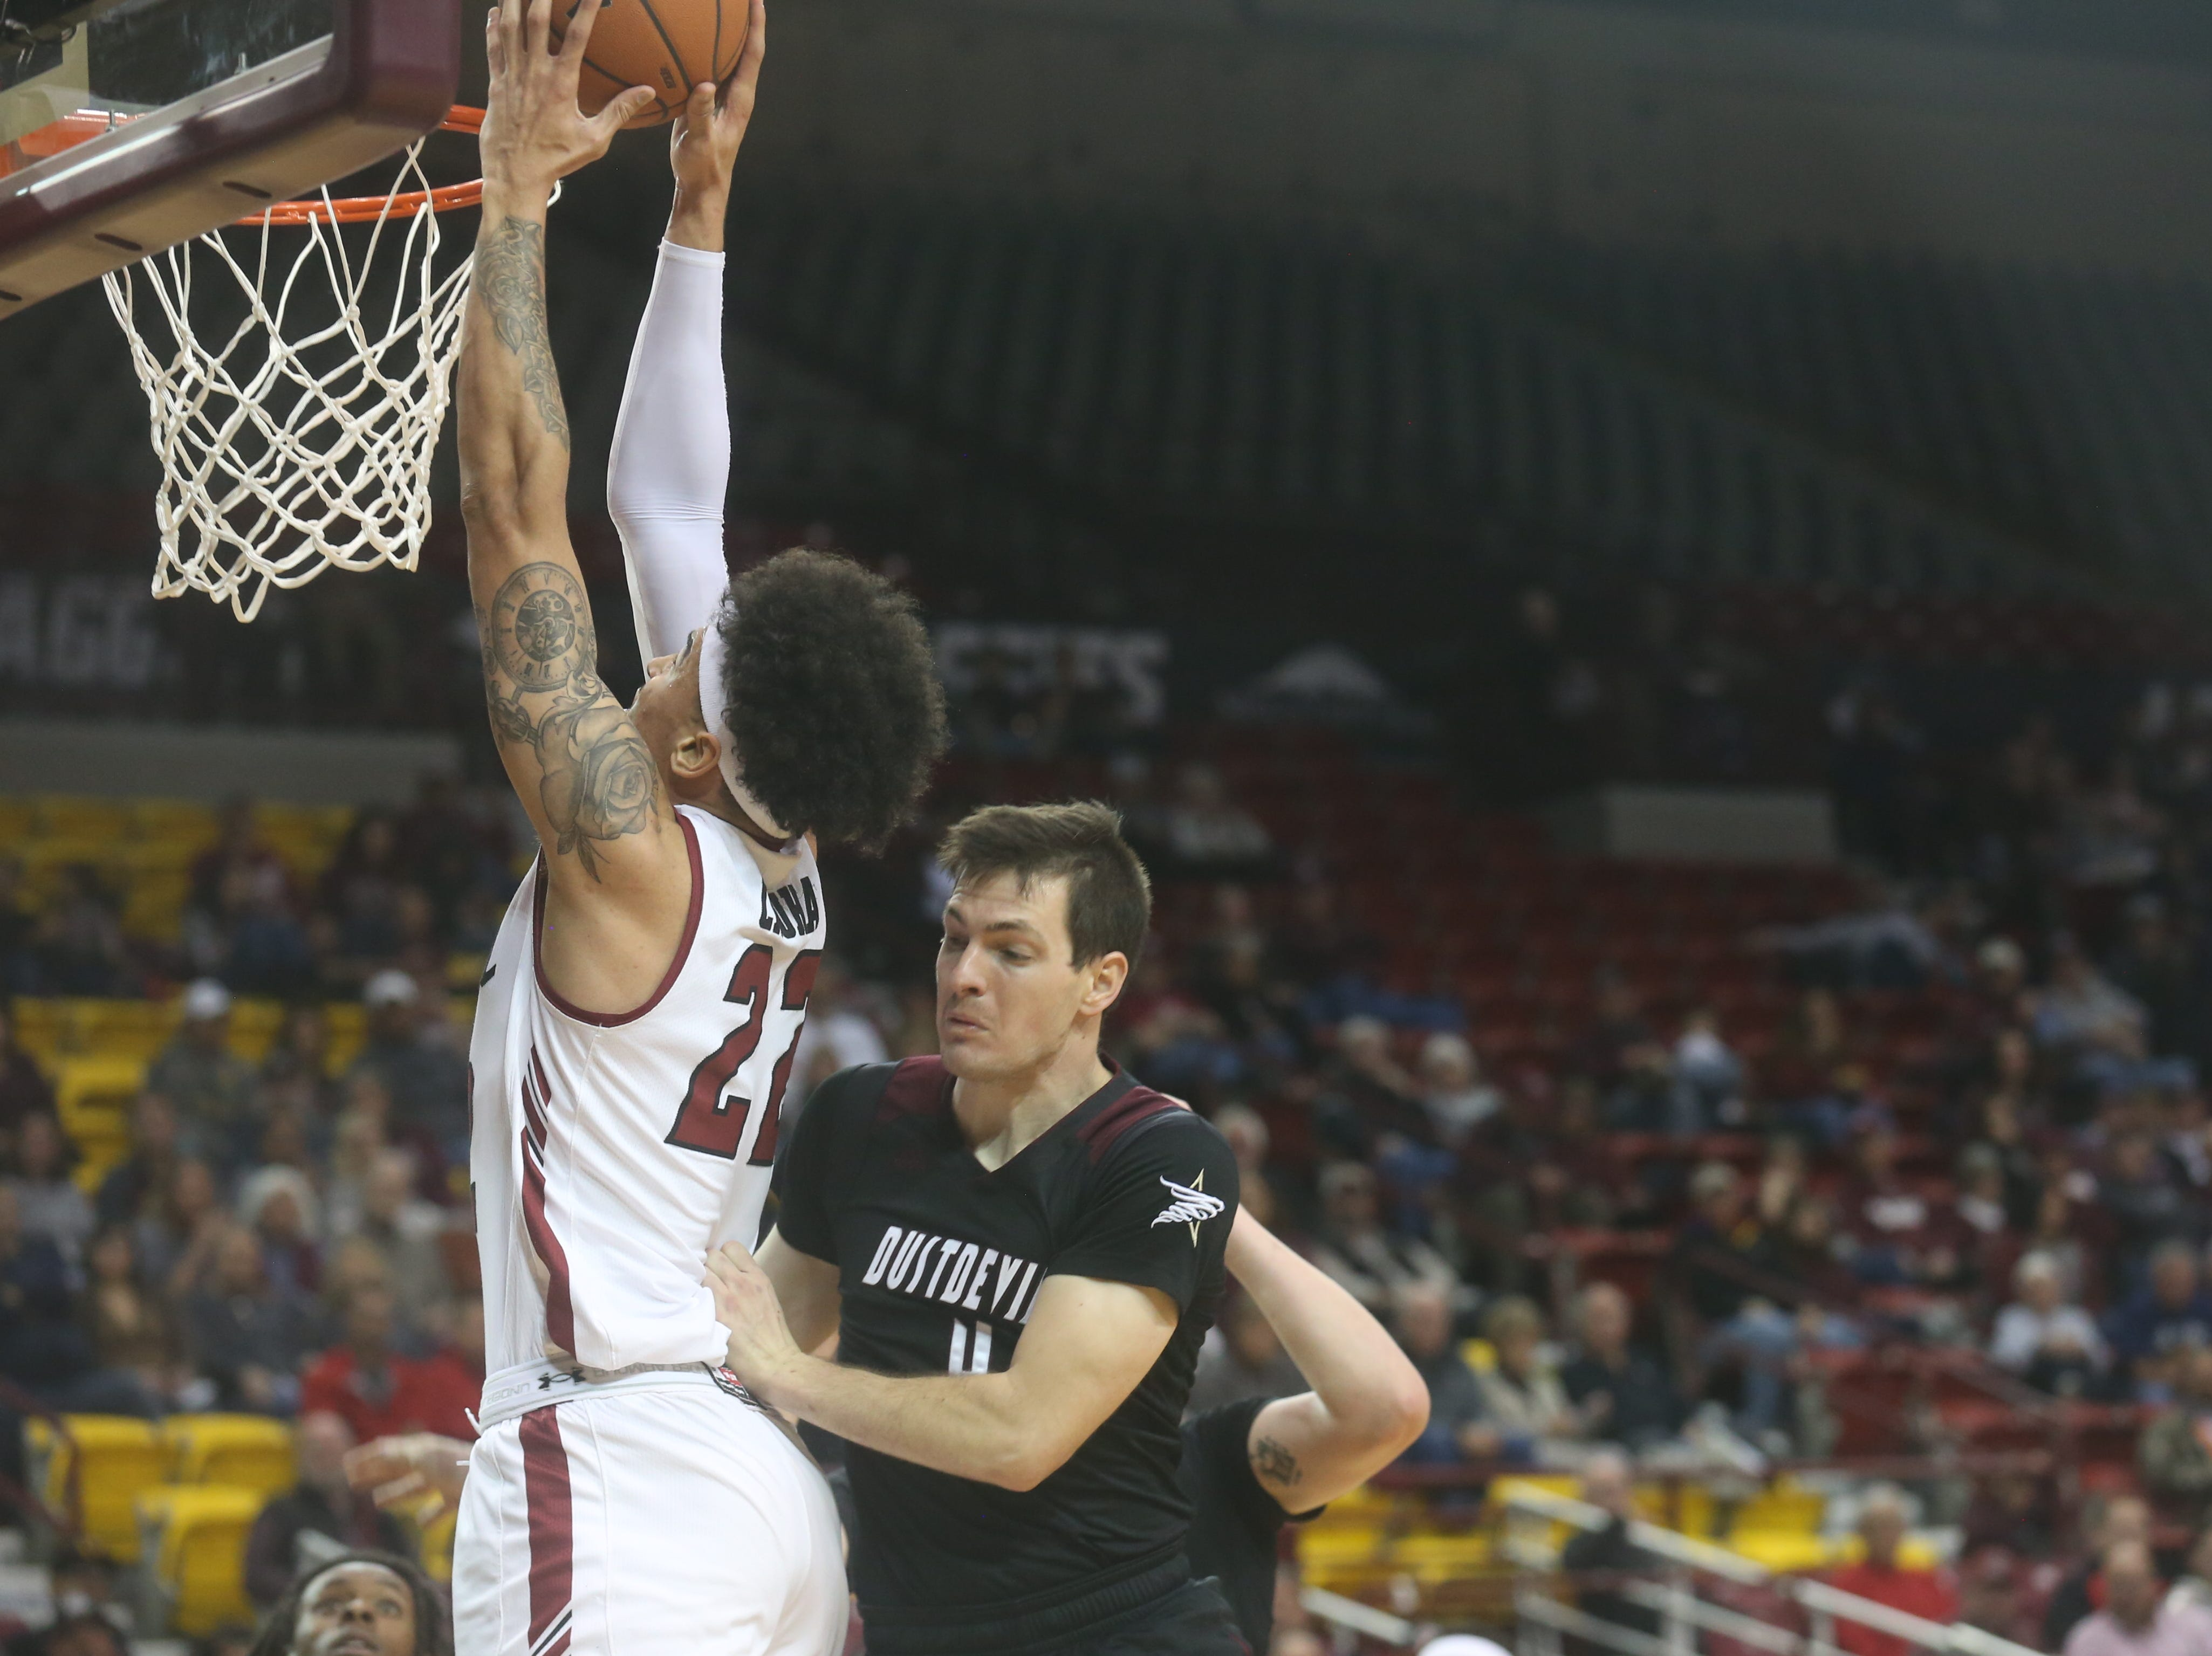 Aggies' Eli Chuha scores a power dunk as Texas A&M International's Danny Spinuzza  moves to slowly to stop the score.